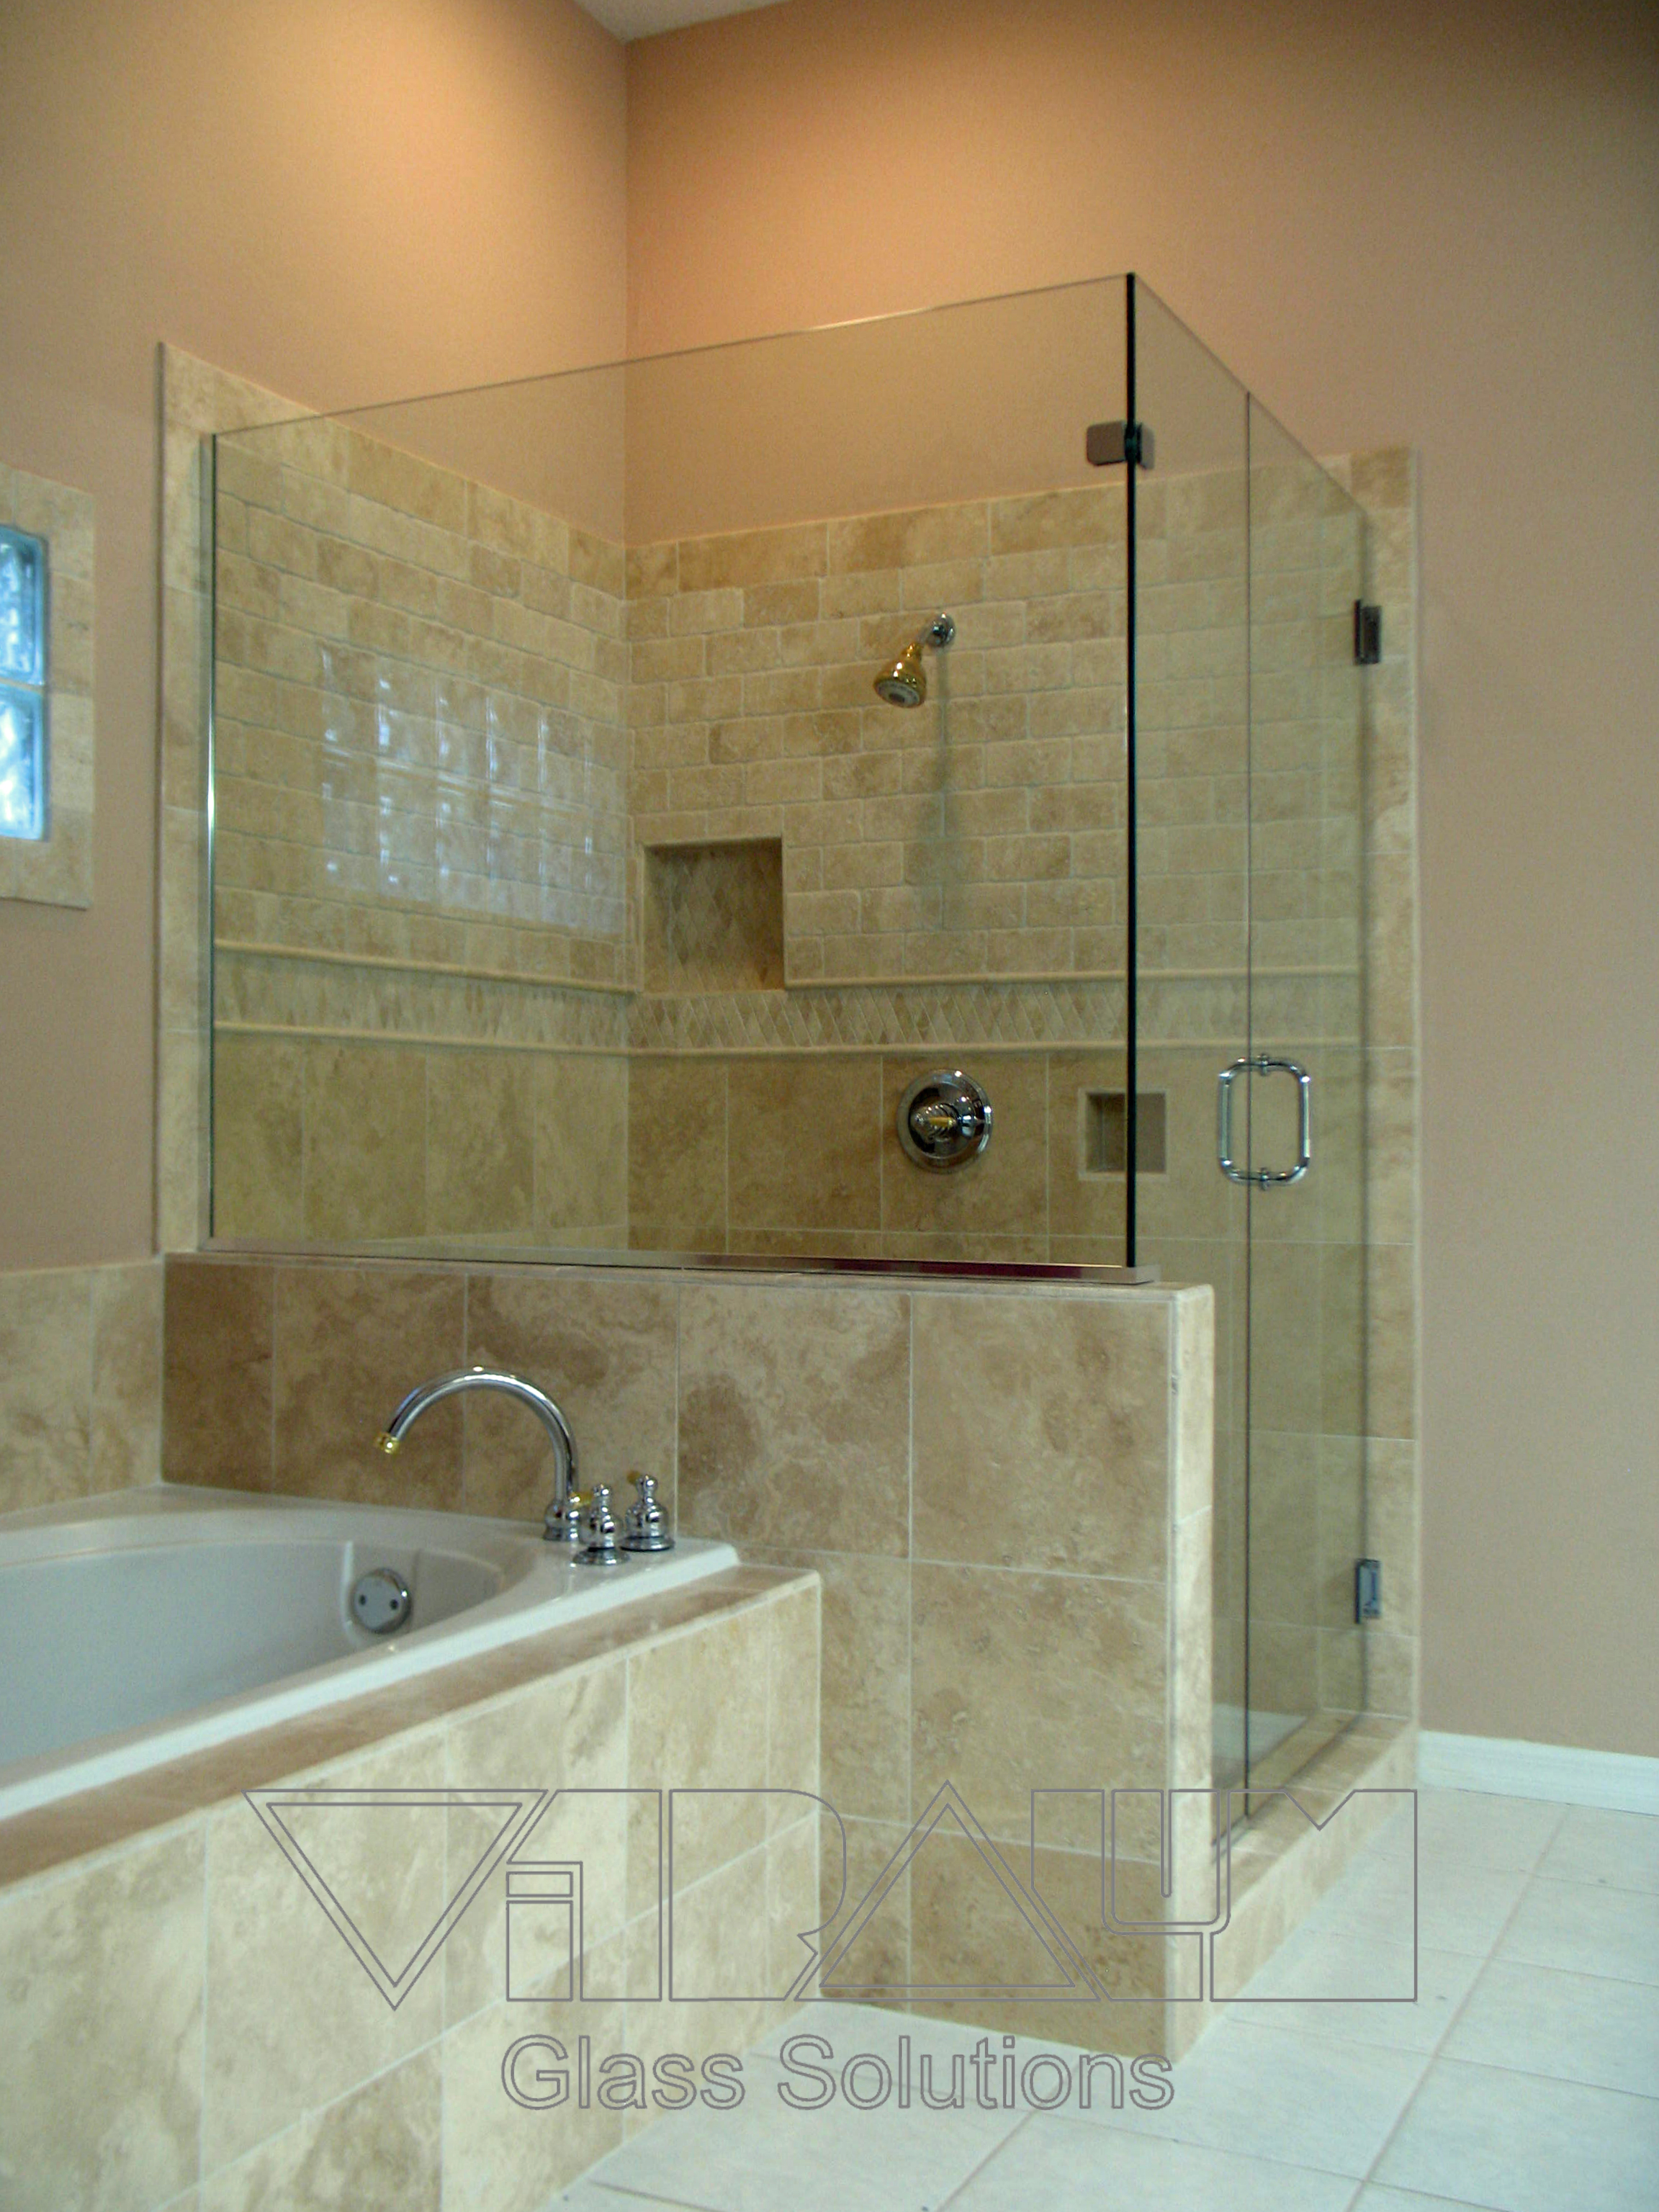 Orlando Frameless Shower Doors Bathroom Glass Enclosures